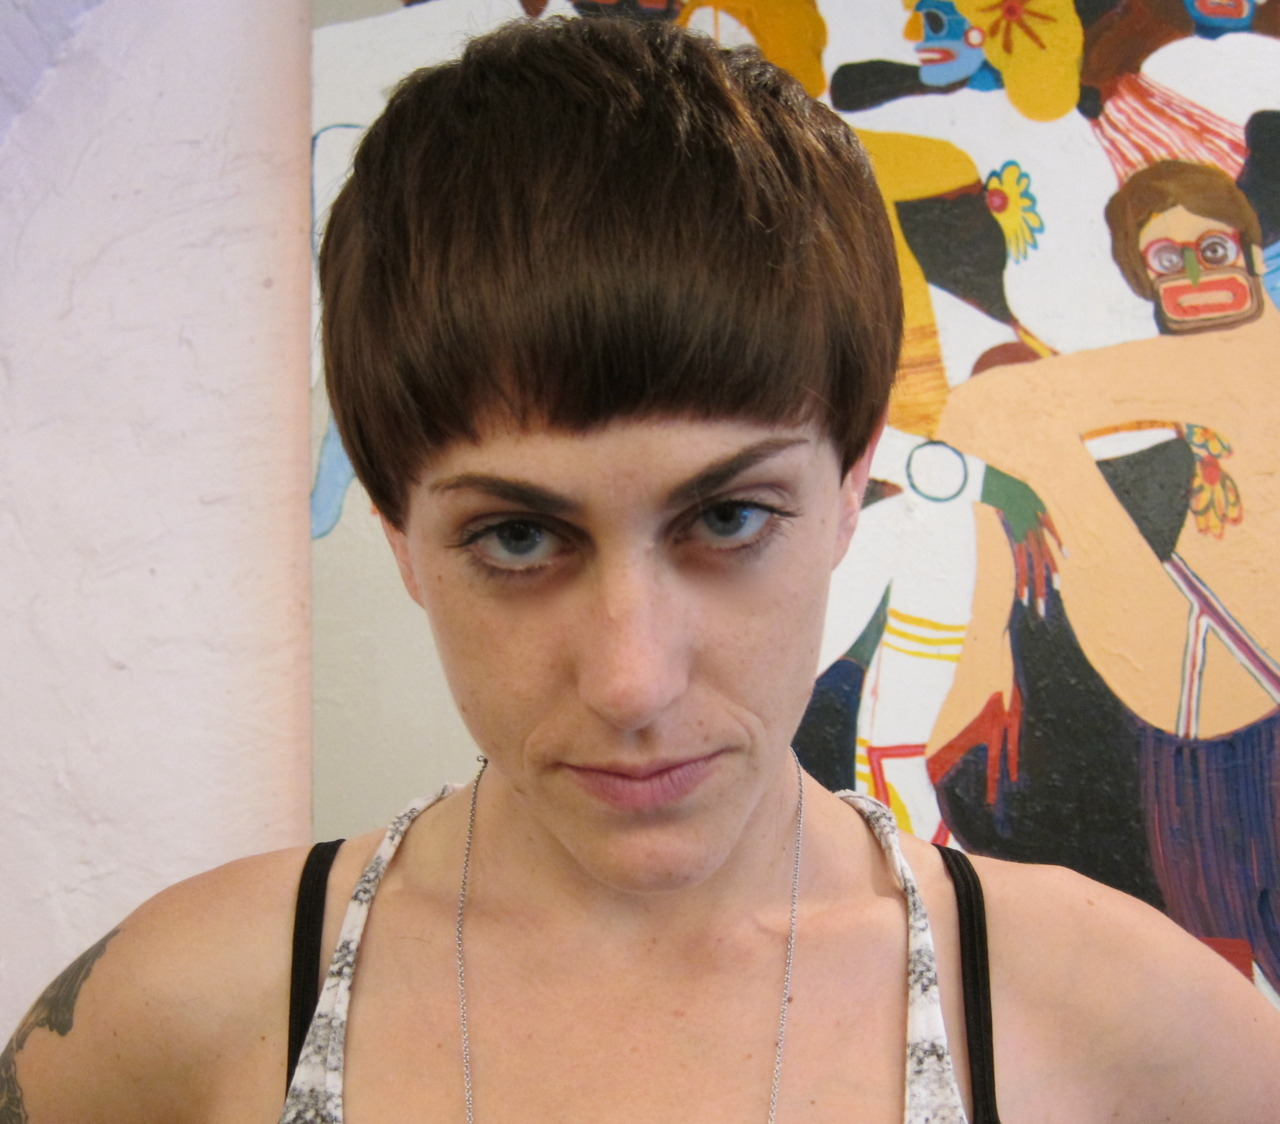 edgy haircuts : Woman Fashion - NicePriceSell.com